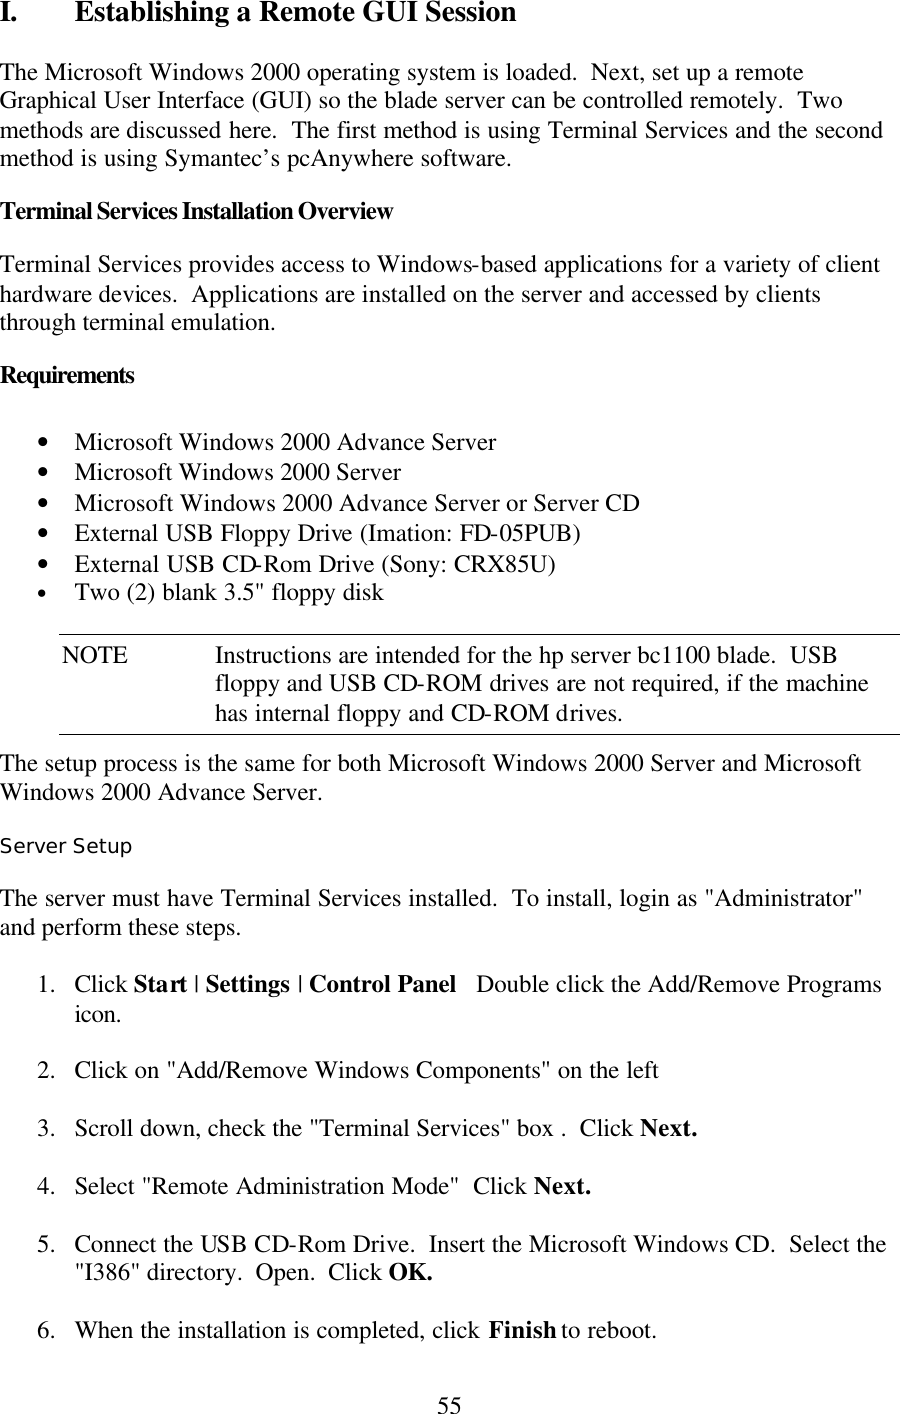 Hp Bh3700 Users Manual Blade_os_guide_07112002